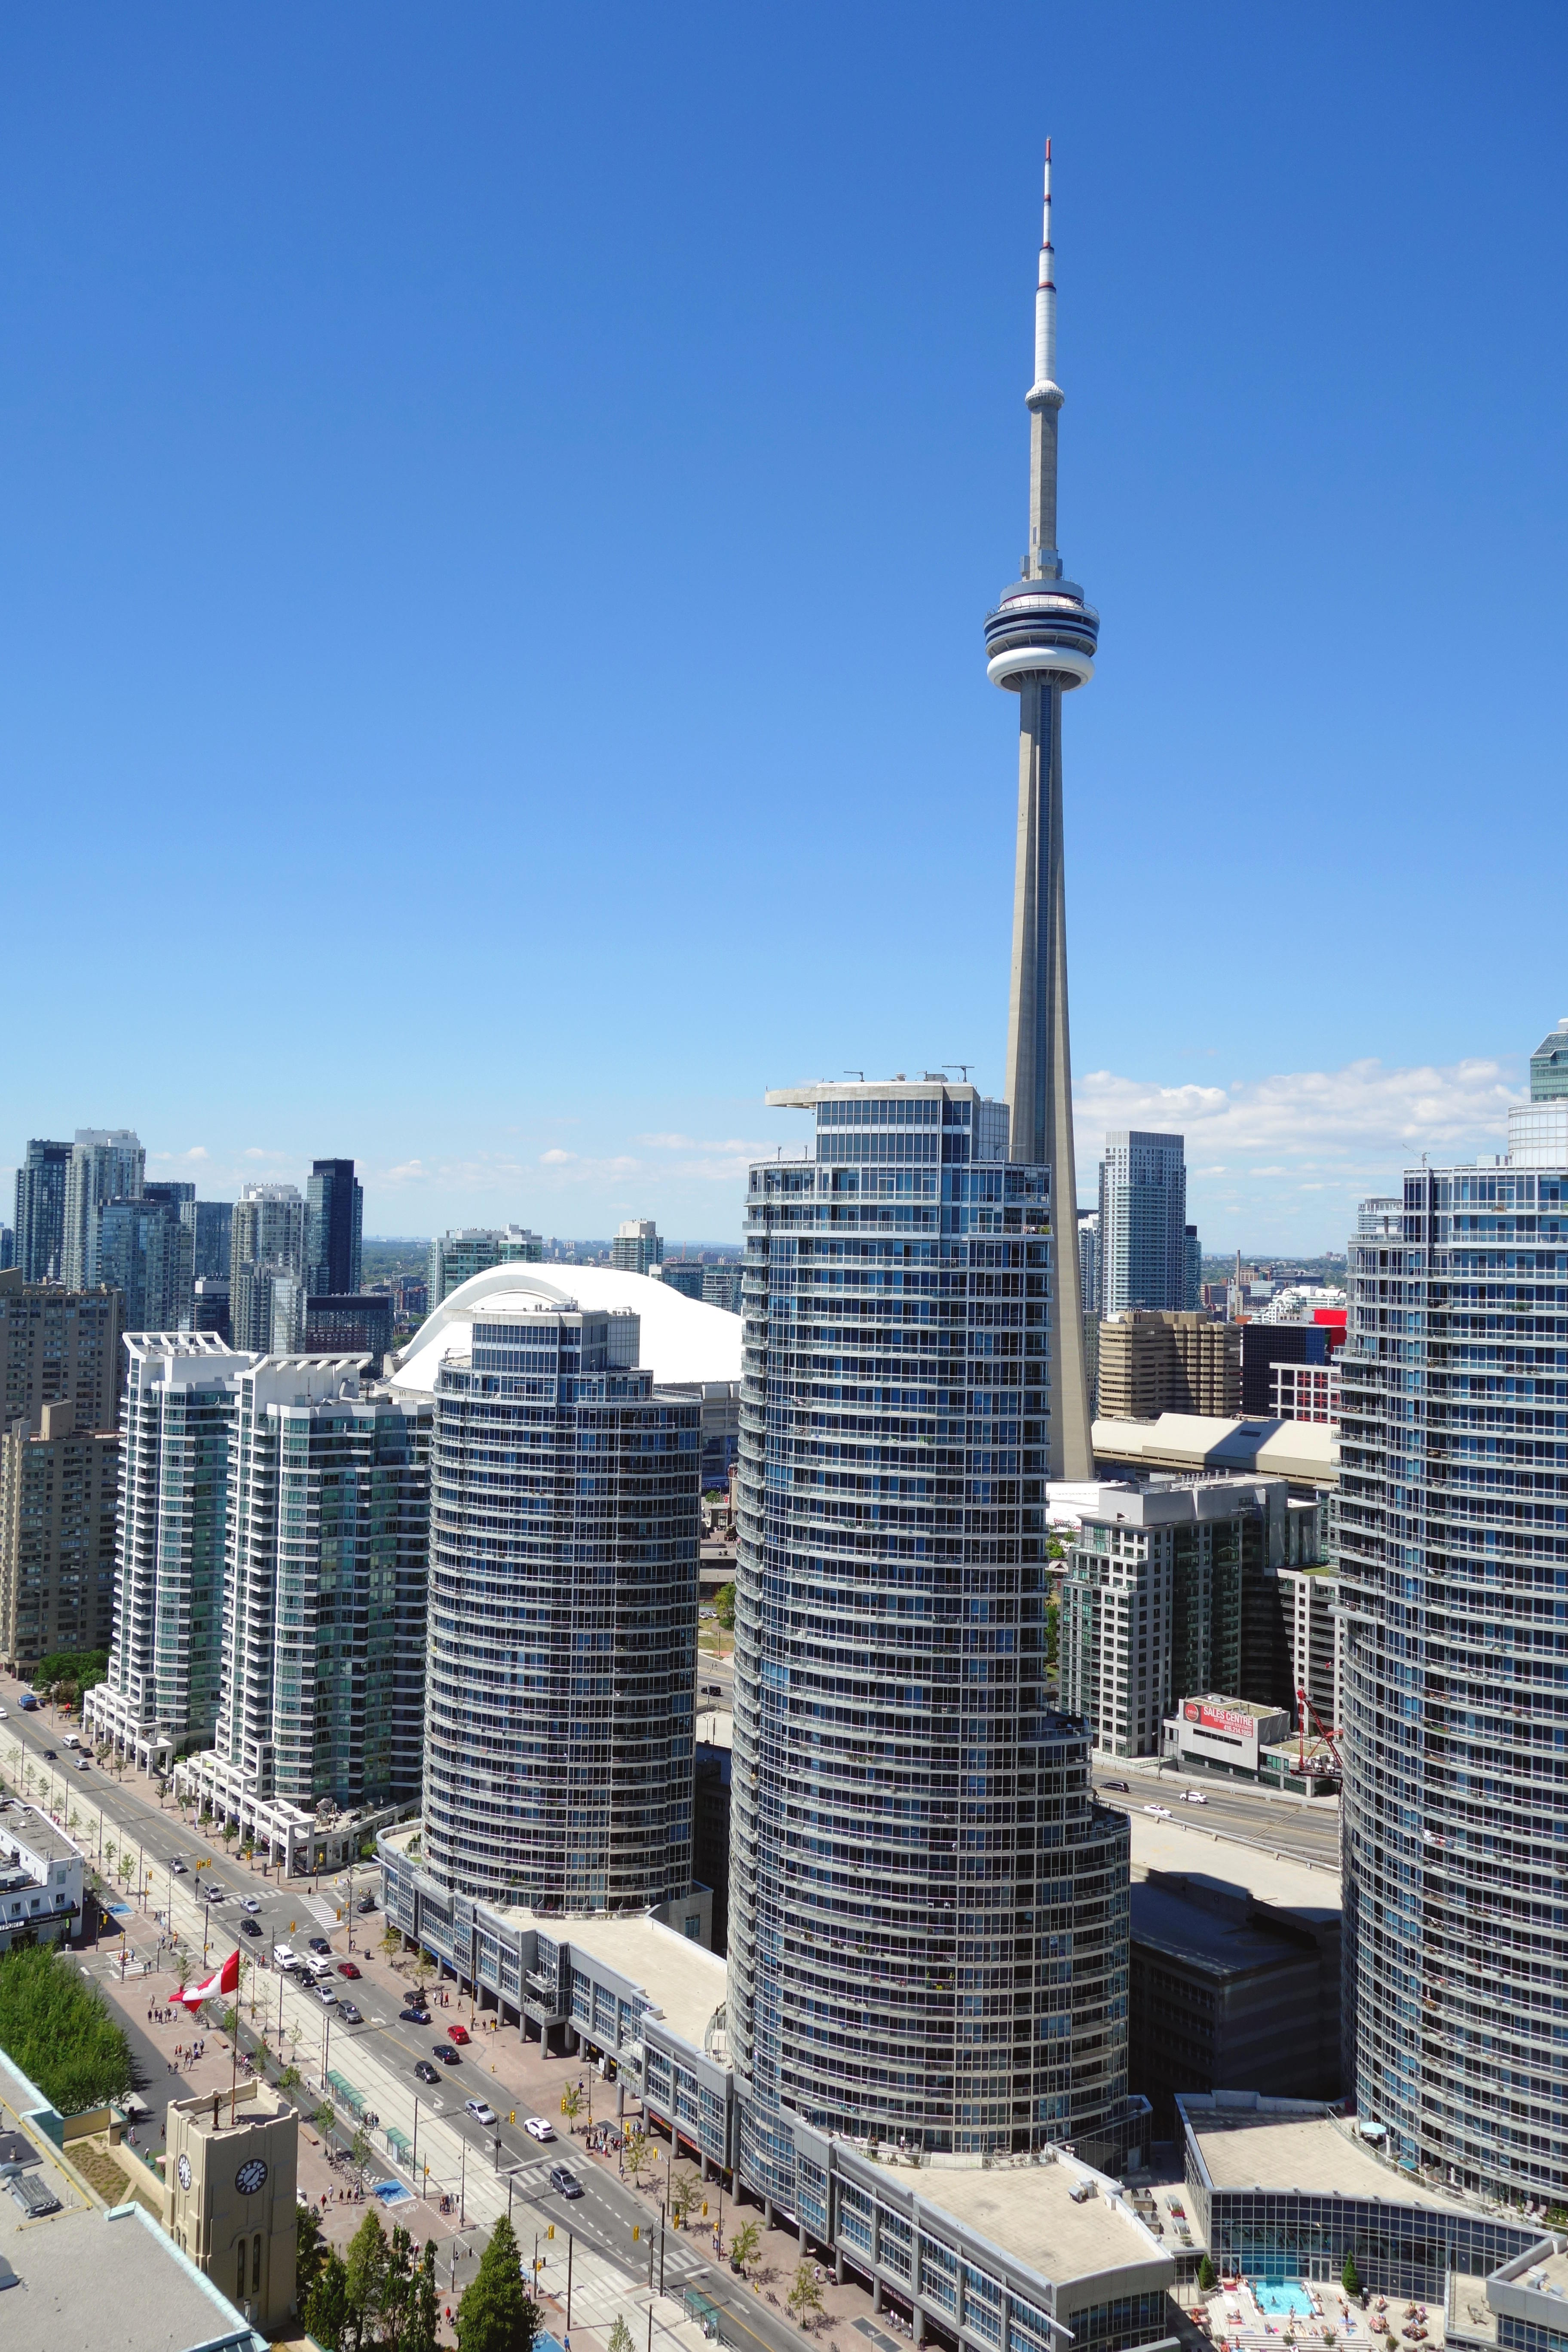 Downtown buildings and CN Tower in Toronto, Canada